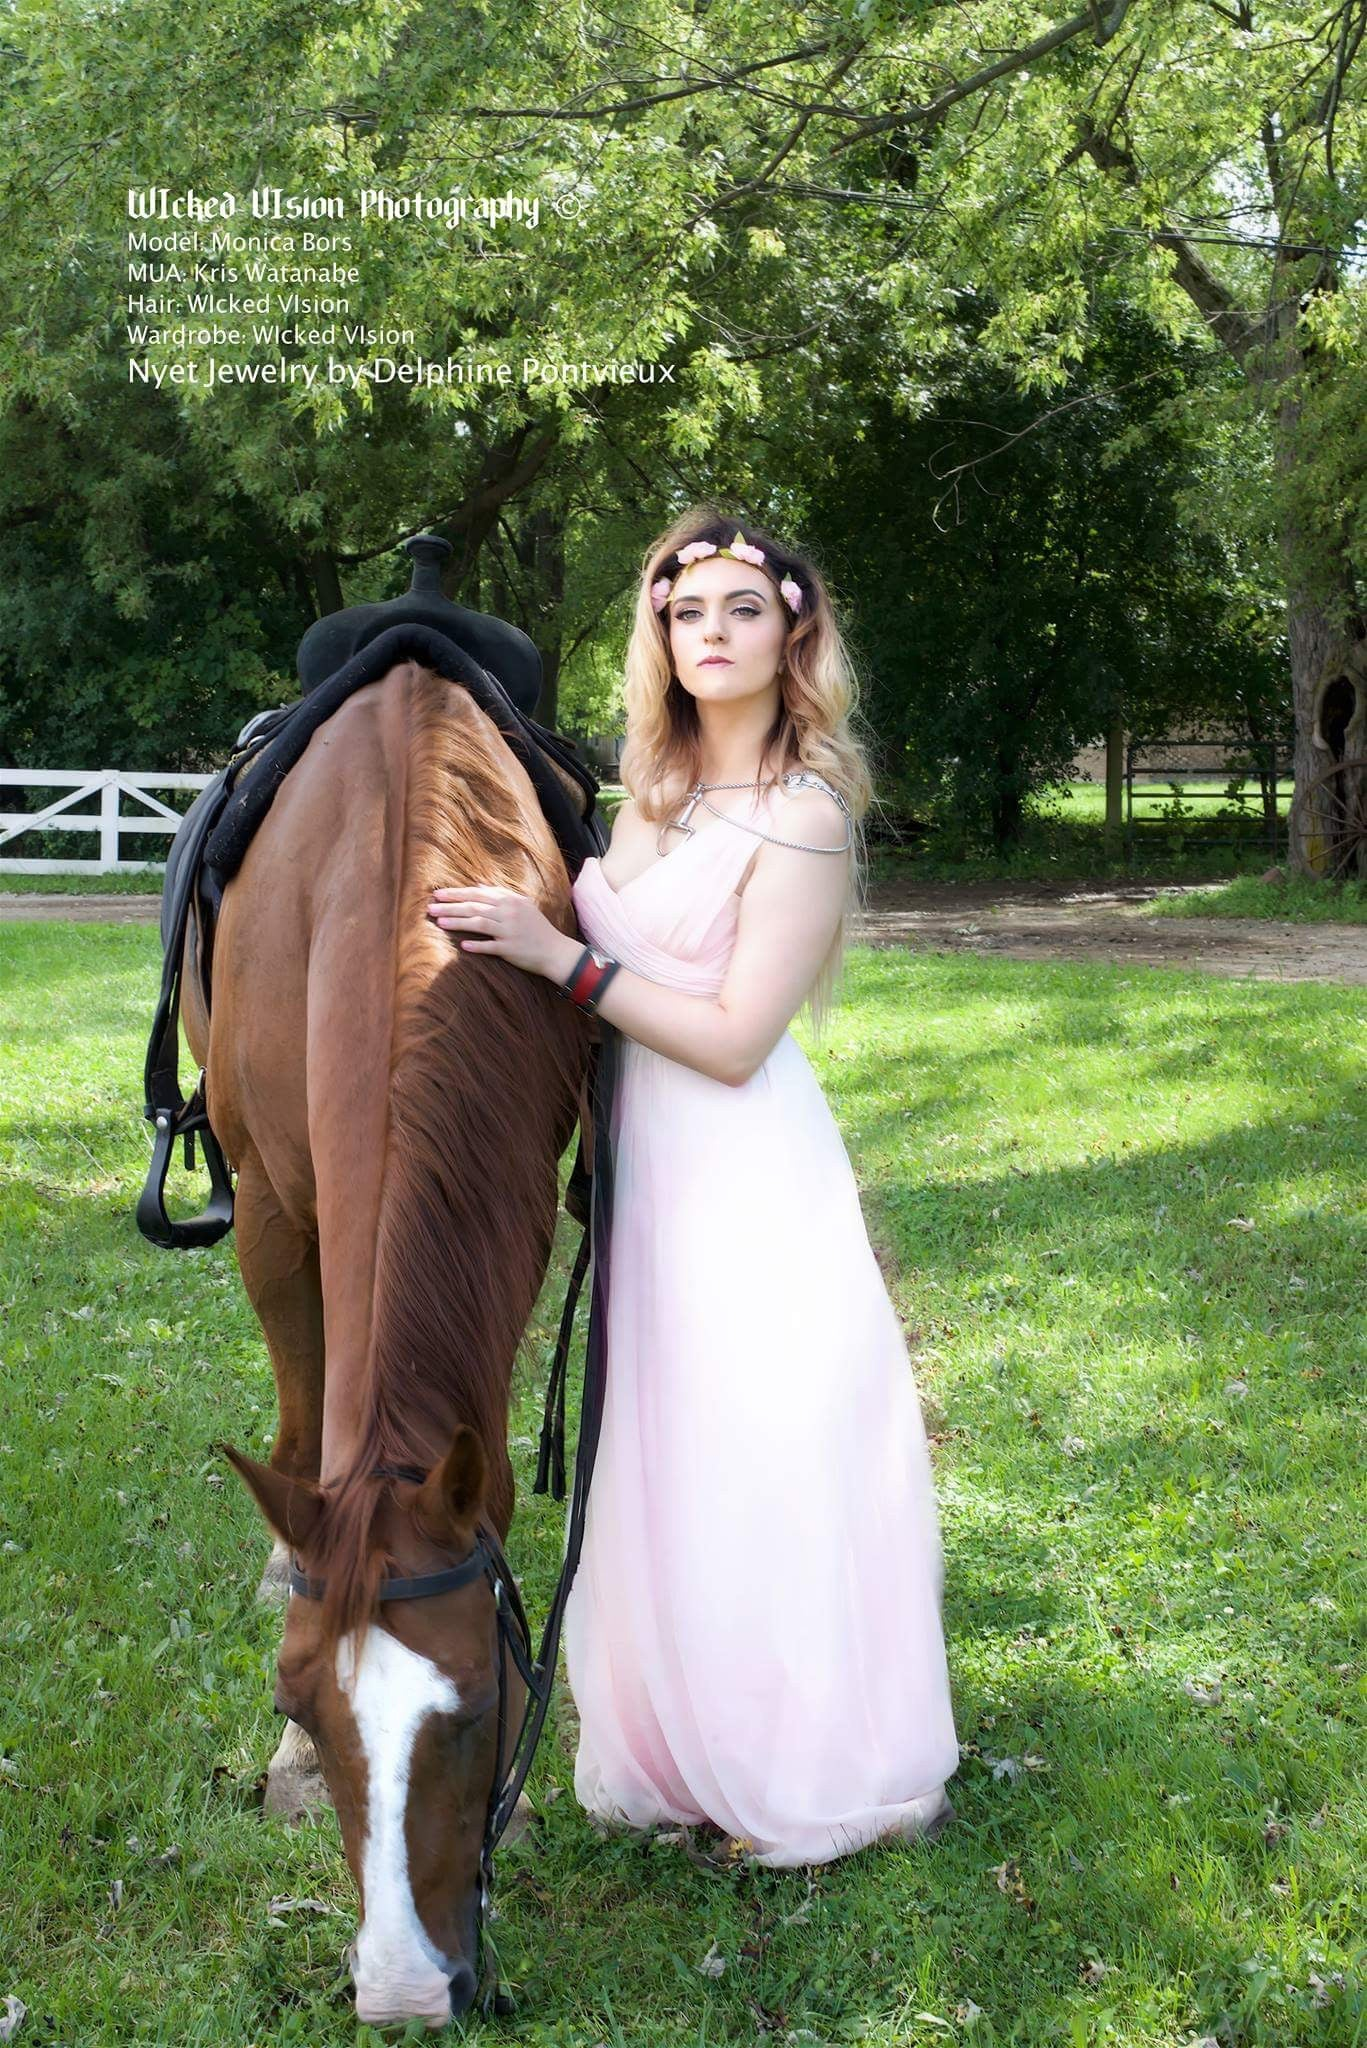 EQUESTRIAN PHOTOSHOOT FOR WICKED VISION MAGAZINE